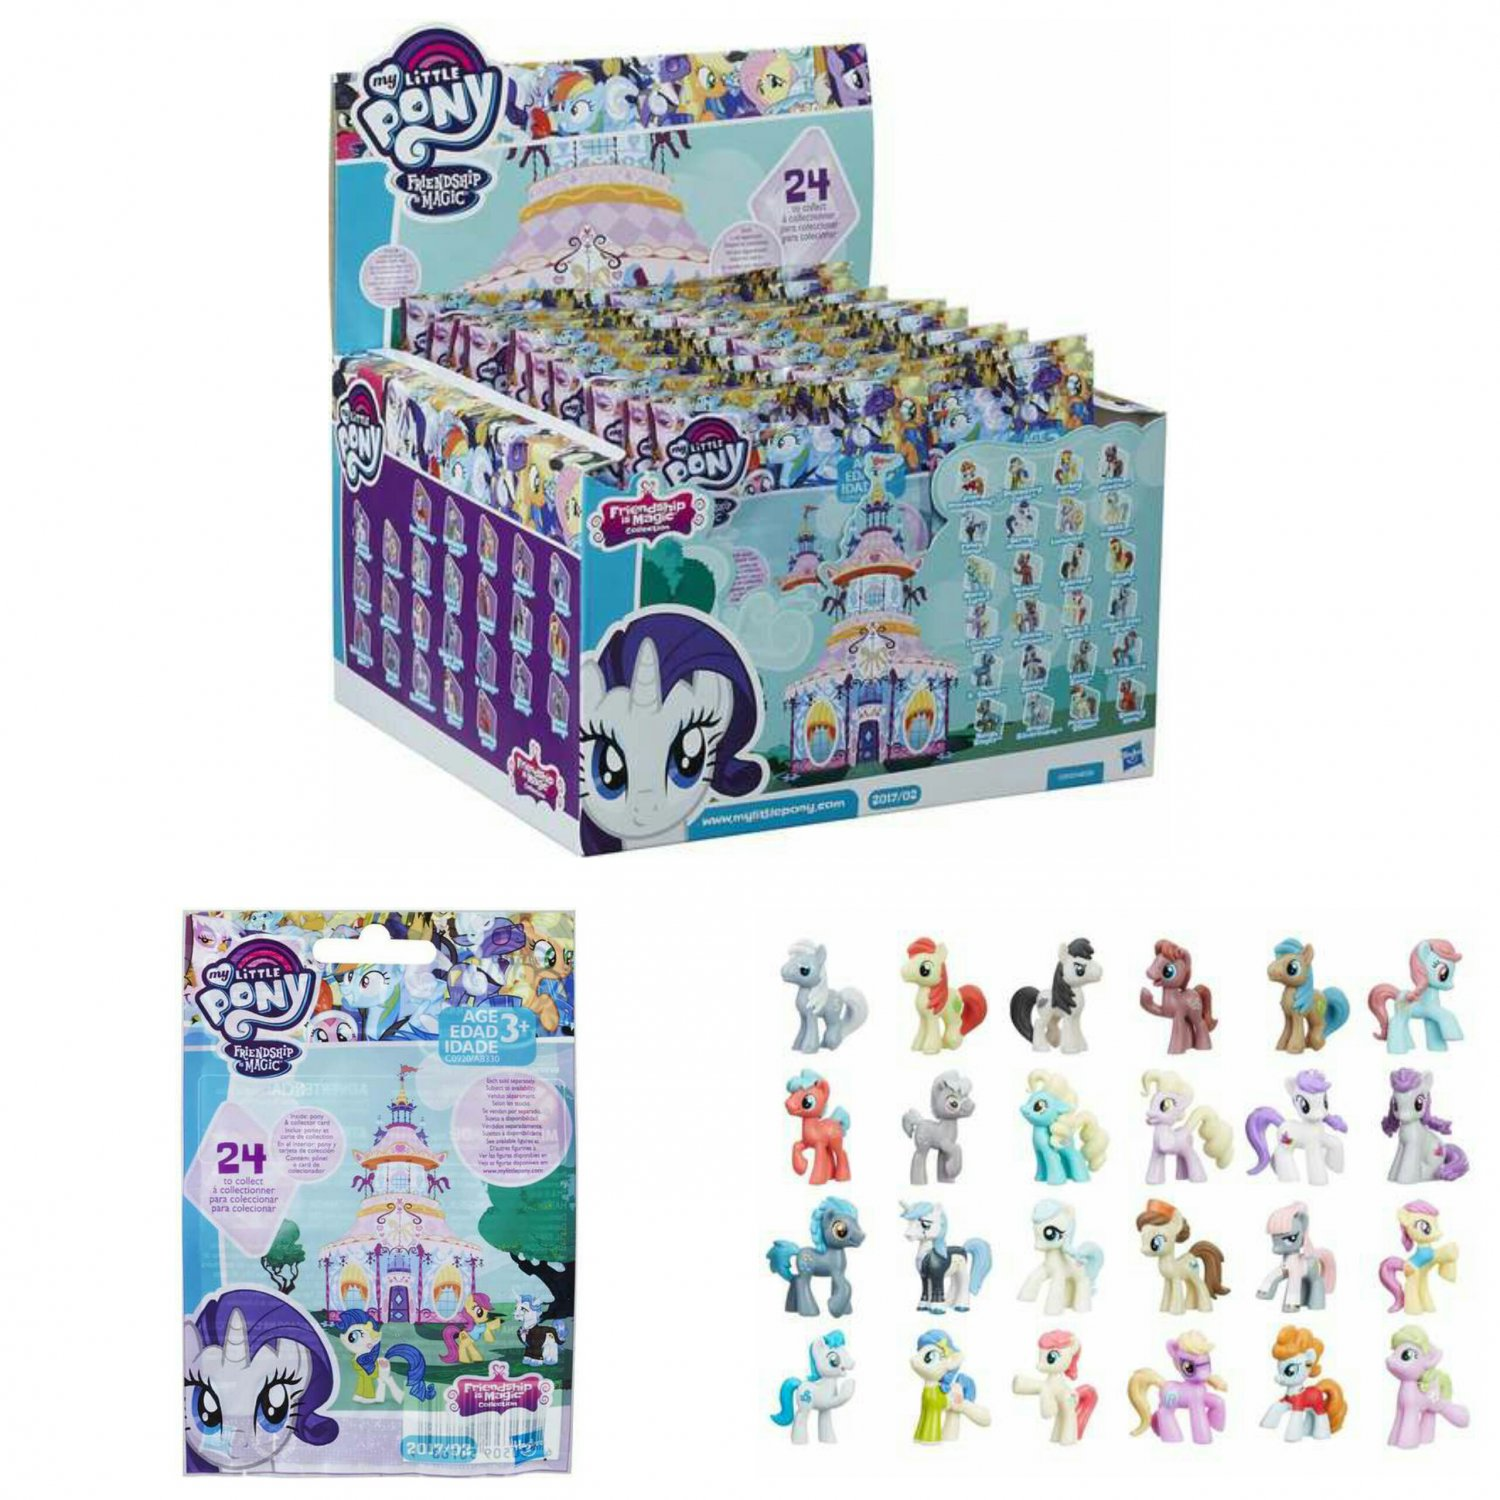 My Little Pony MLP Friendship is Magic Series / Wave 20 Mystery Blind Bag Figure �24 Sealed Packs